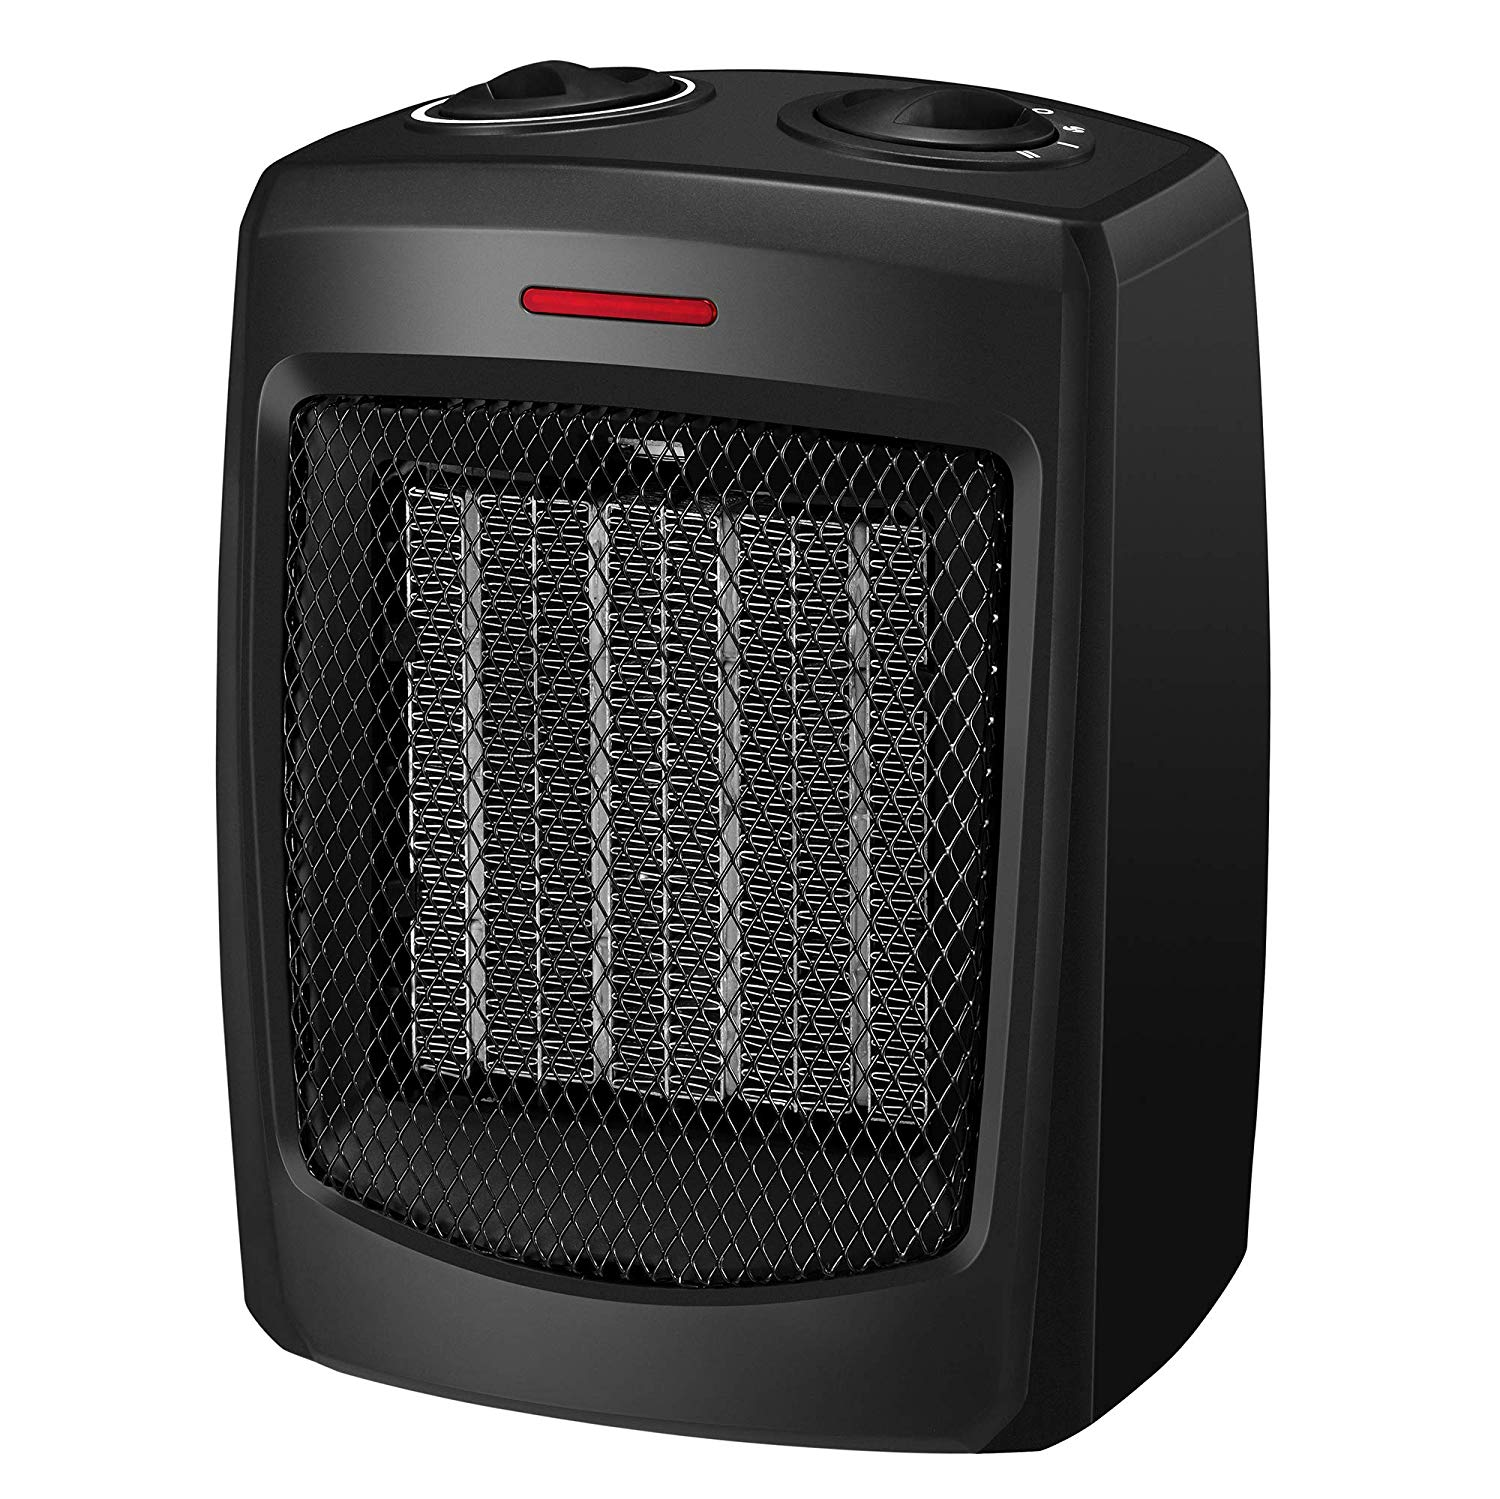 andily Space Heater Electric Heater for Home and Office Ceramic Small Heater